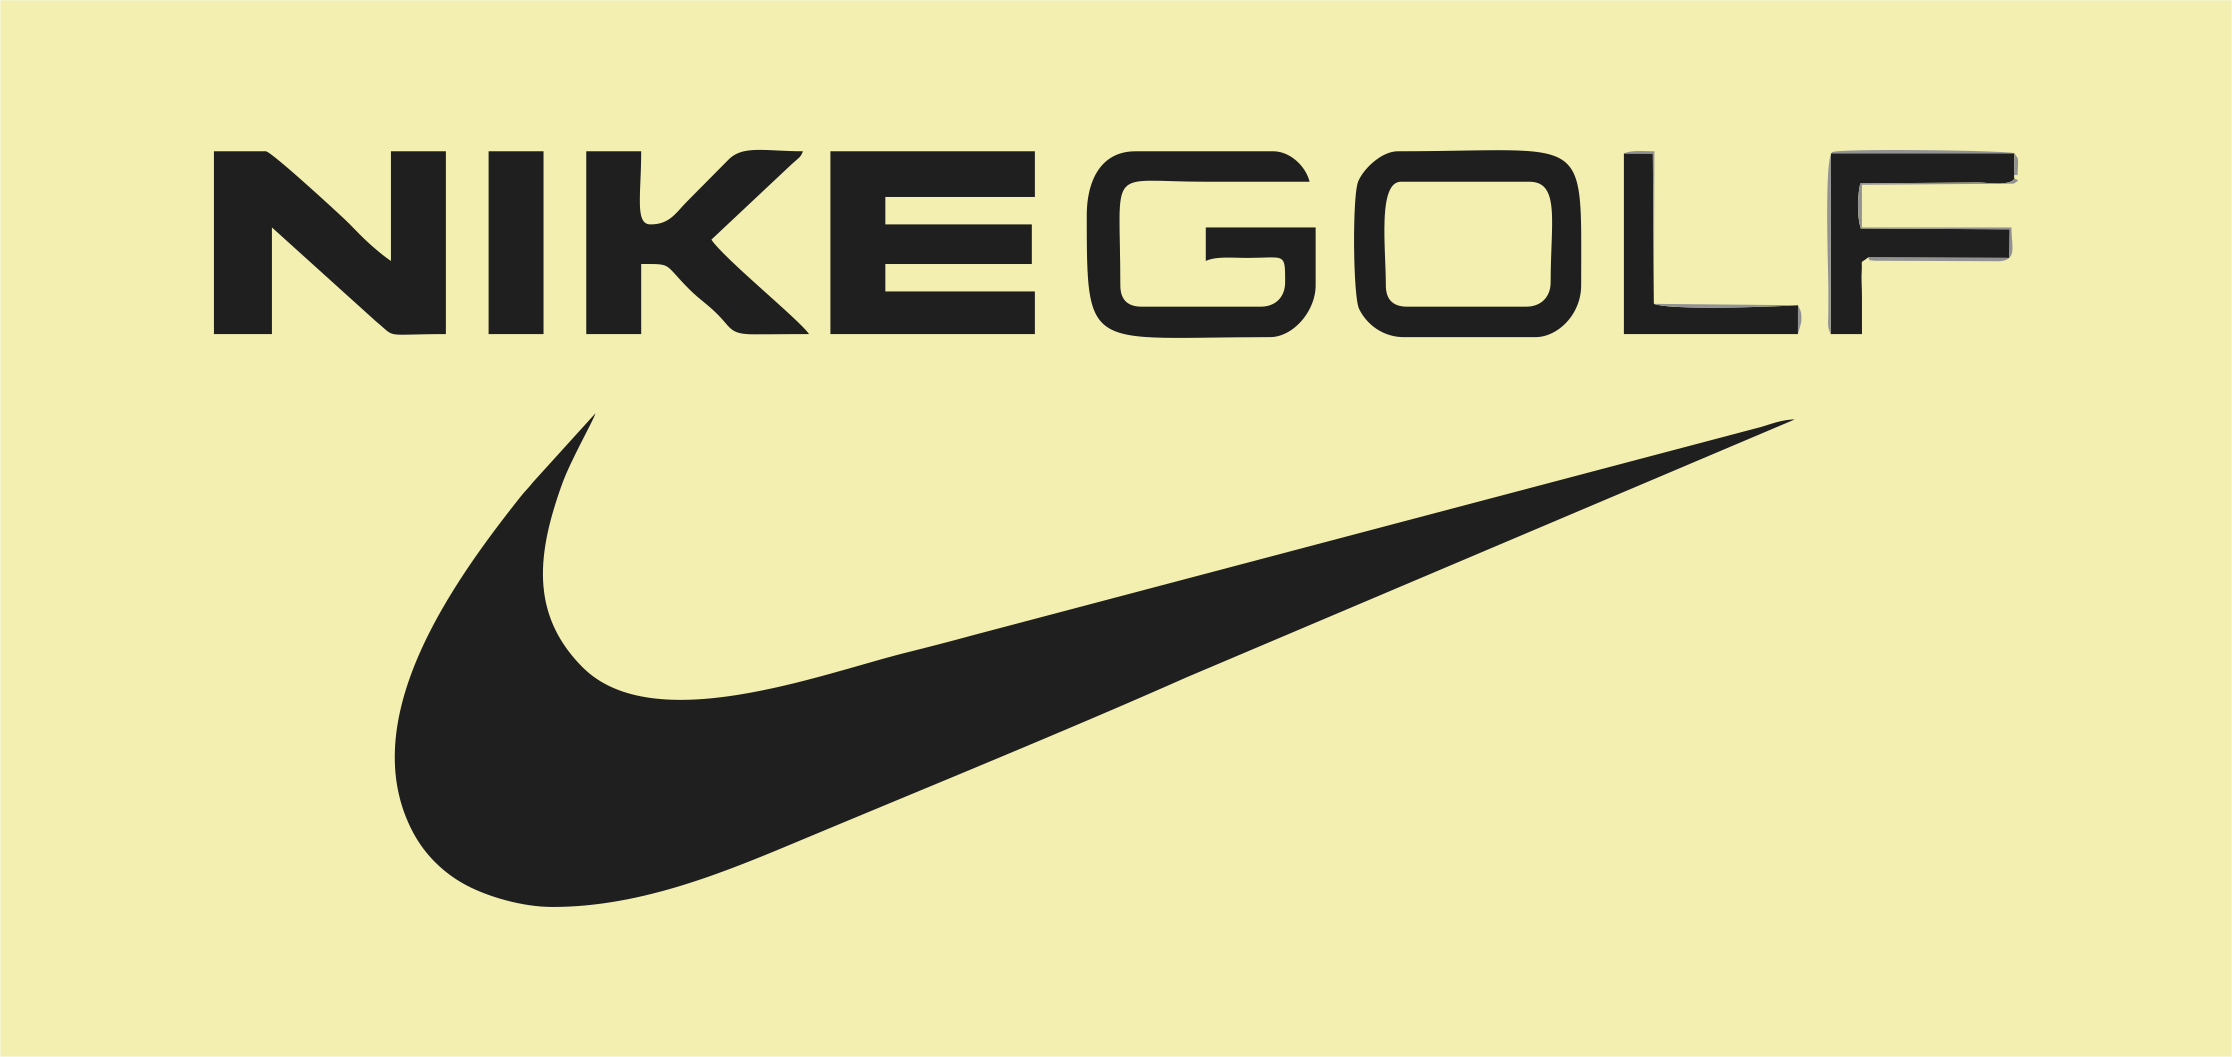 Exclusive Nike Golf Range